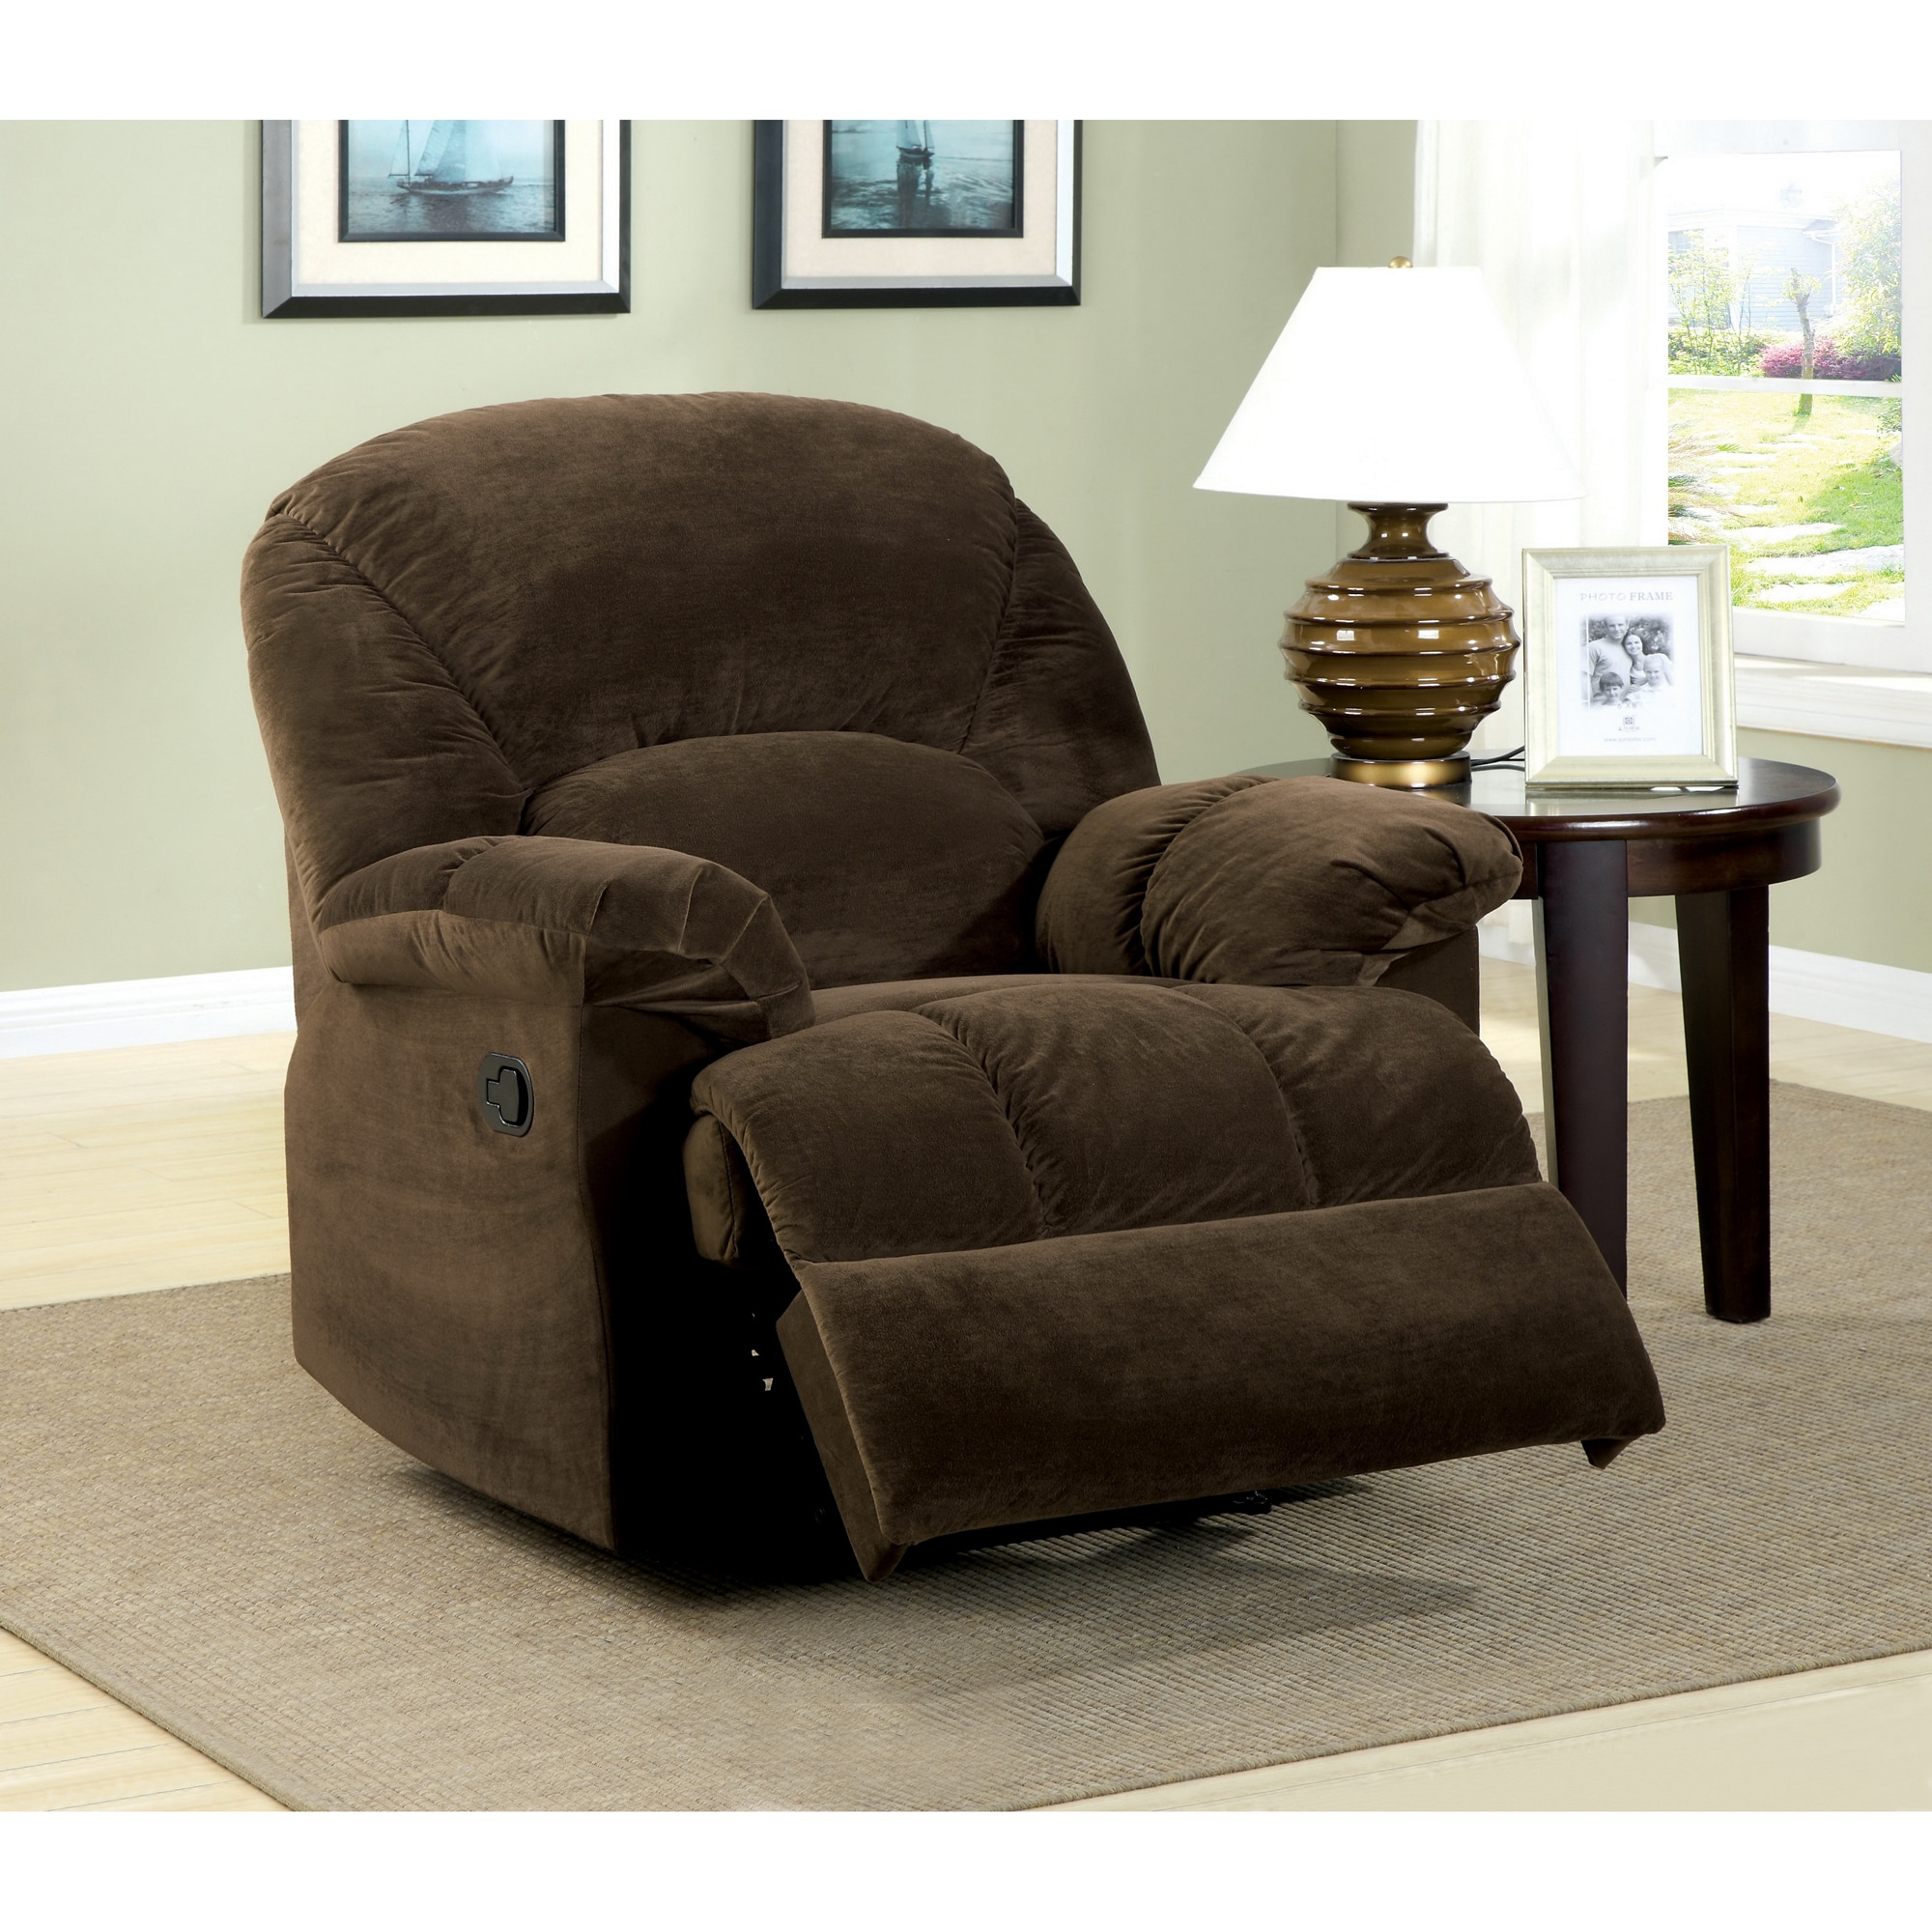 Shop furniture of america harper smooth cocoa brown bella upholstery recliner chair free shipping today overstock com 6505112